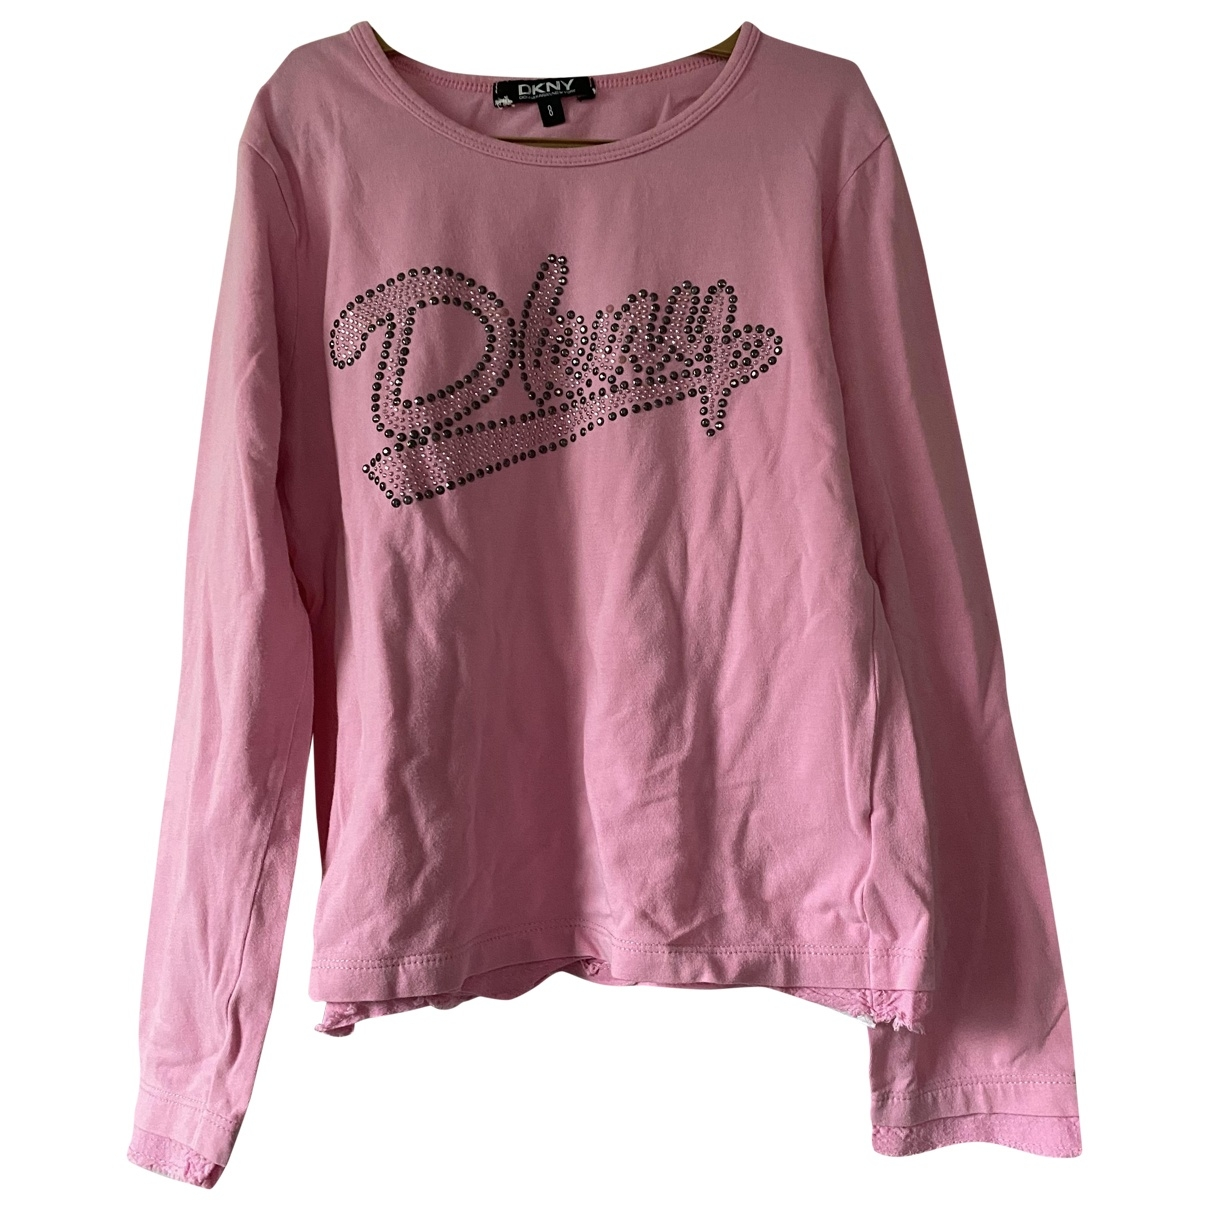 Dkny \N Pink Cotton  top for Kids 8 years - up to 128cm FR